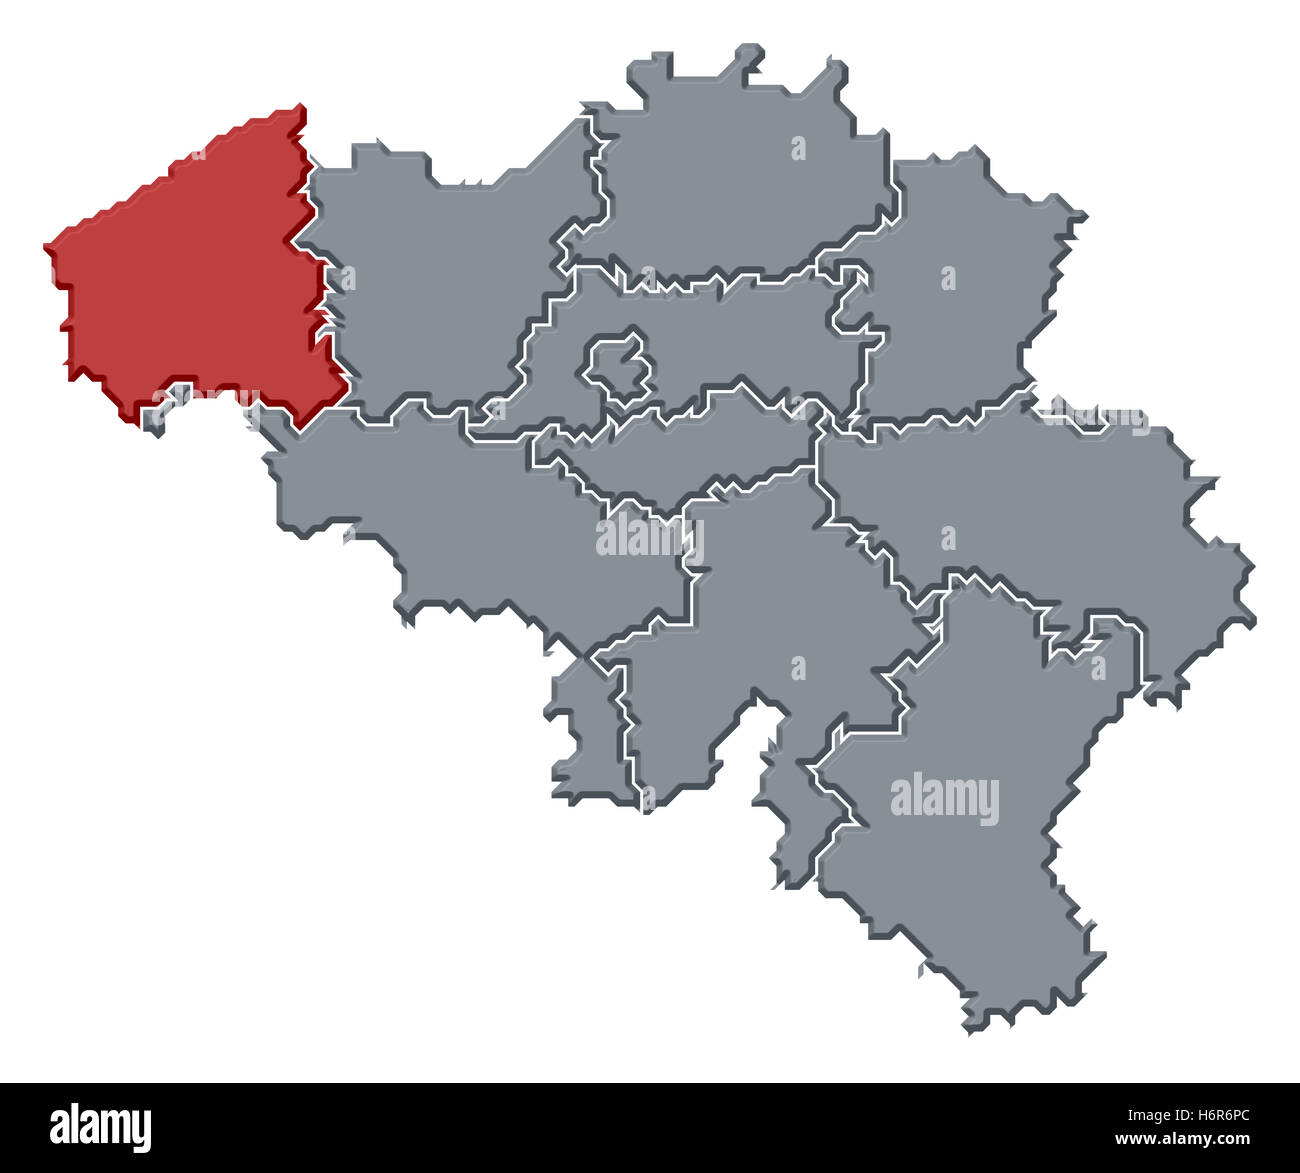 Belgium map atlas map of the world profile symbolic political colour belgium map atlas map of the world profile symbolic political colour model design project concept plan draft graphic coloured gumiabroncs Gallery